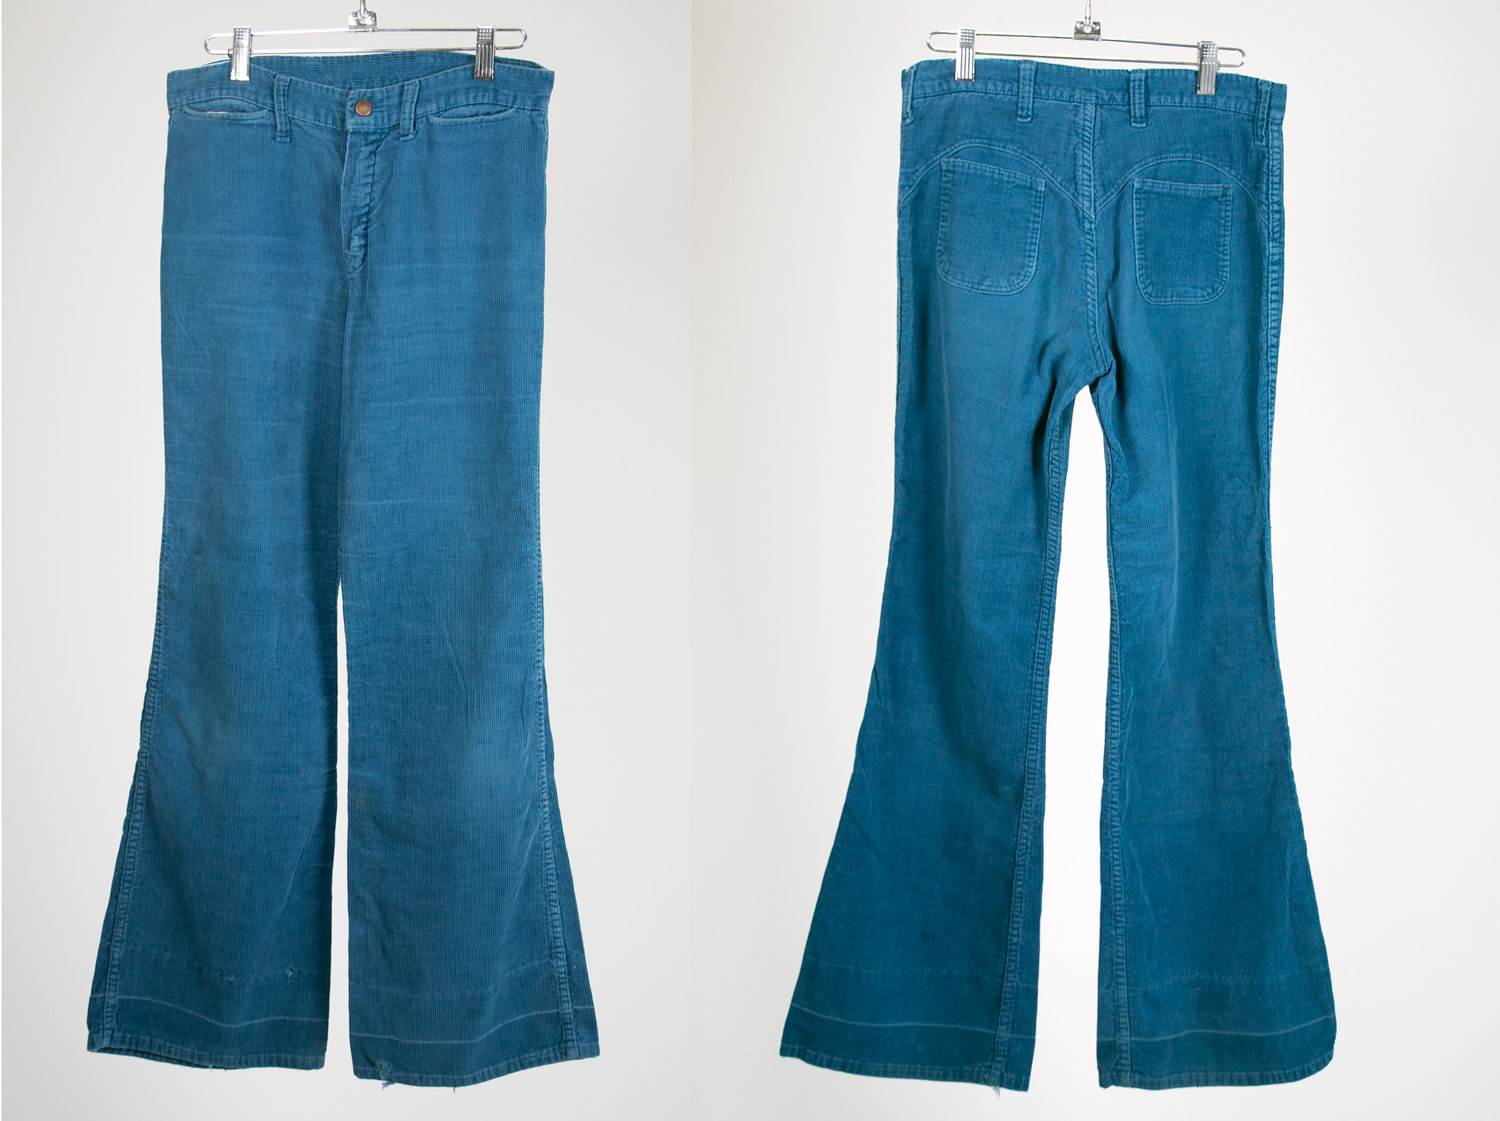 Vintage 1970's Blue Corduroy Bell Bottom Pants, Hillbilly Brand, W30 L31 - Retro, Hippie, Hipster, Rocker